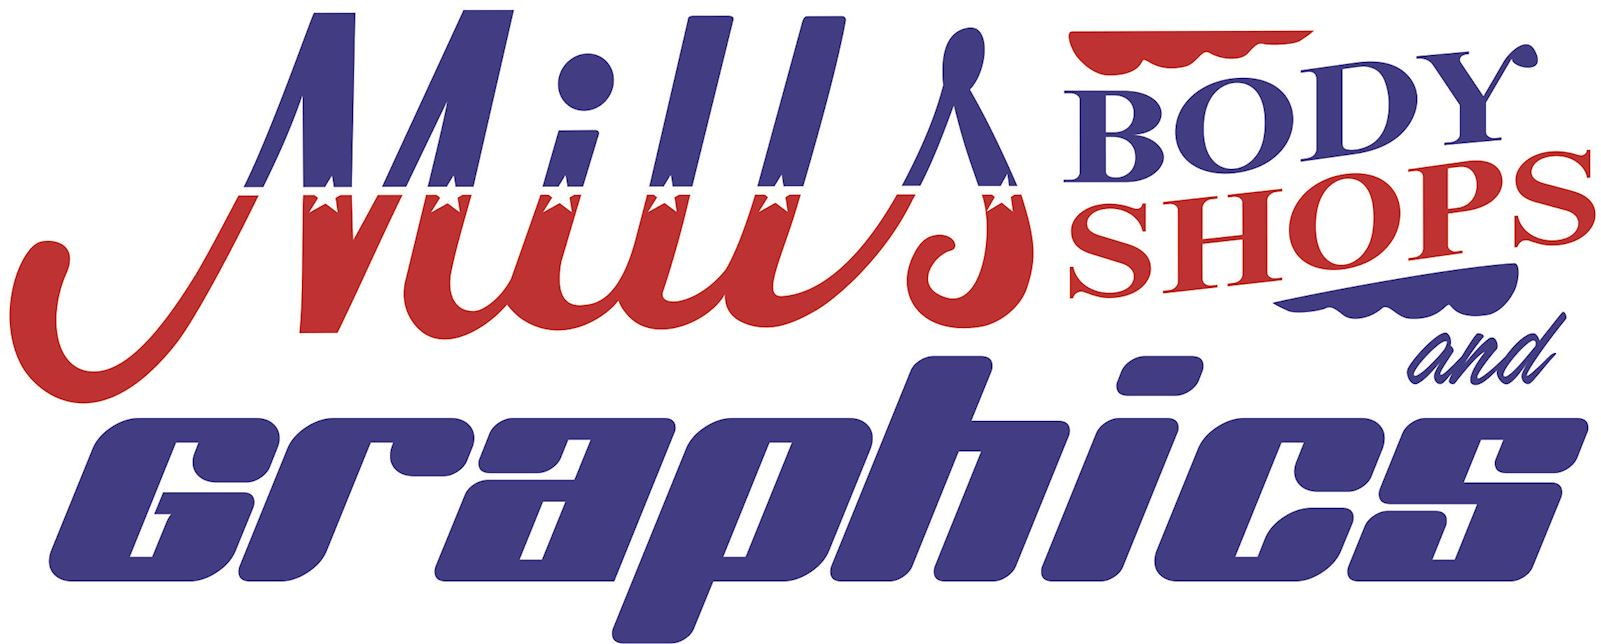 Mills Body Shops and Graphics